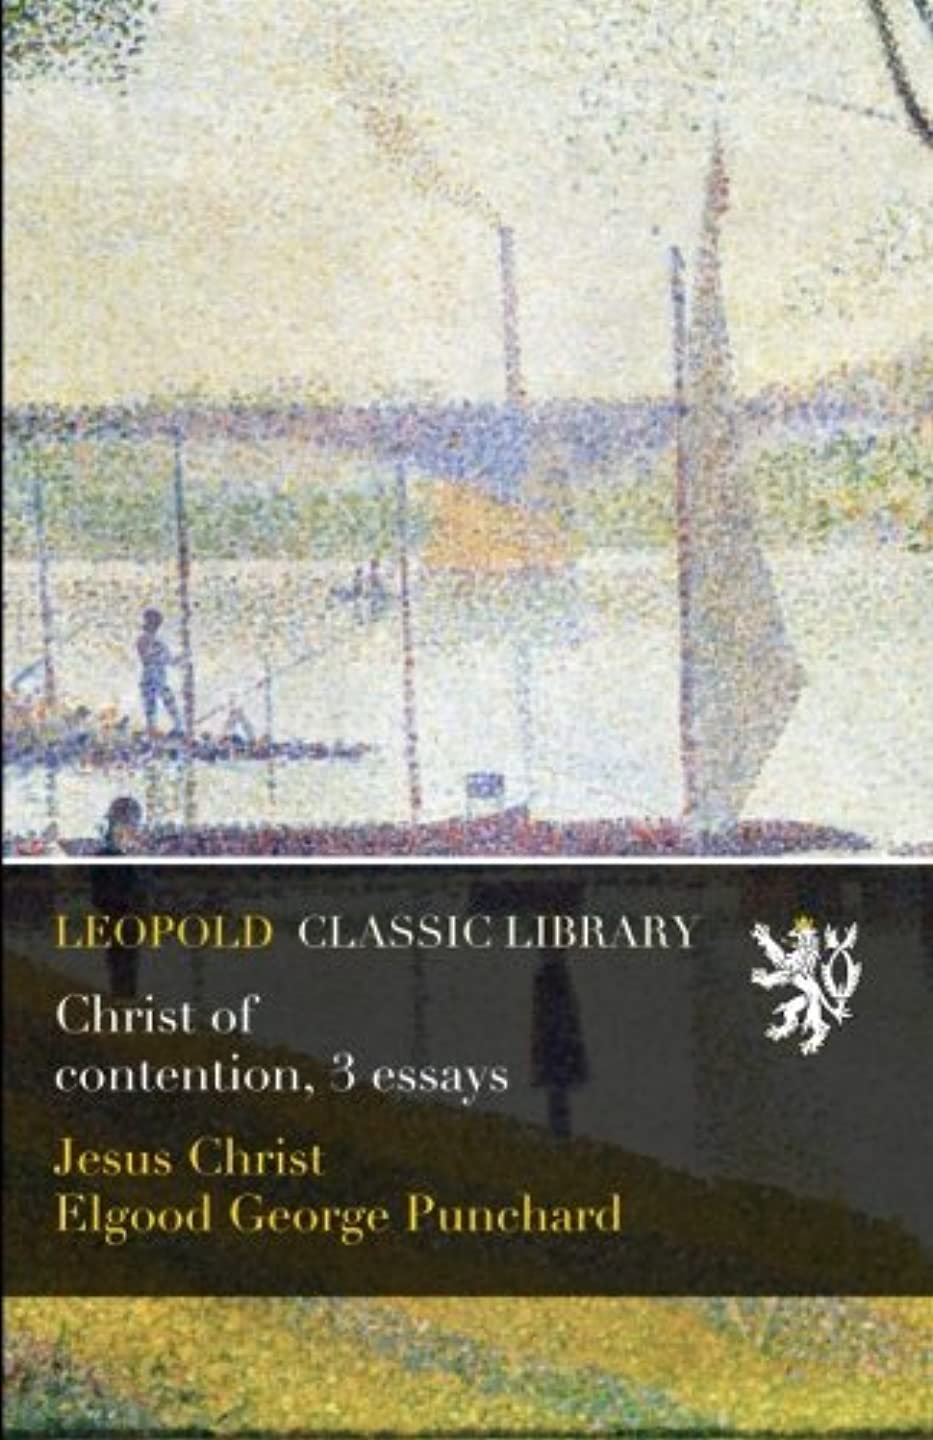 石鹸生まれ課すChrist of Сontention. Three  Essays